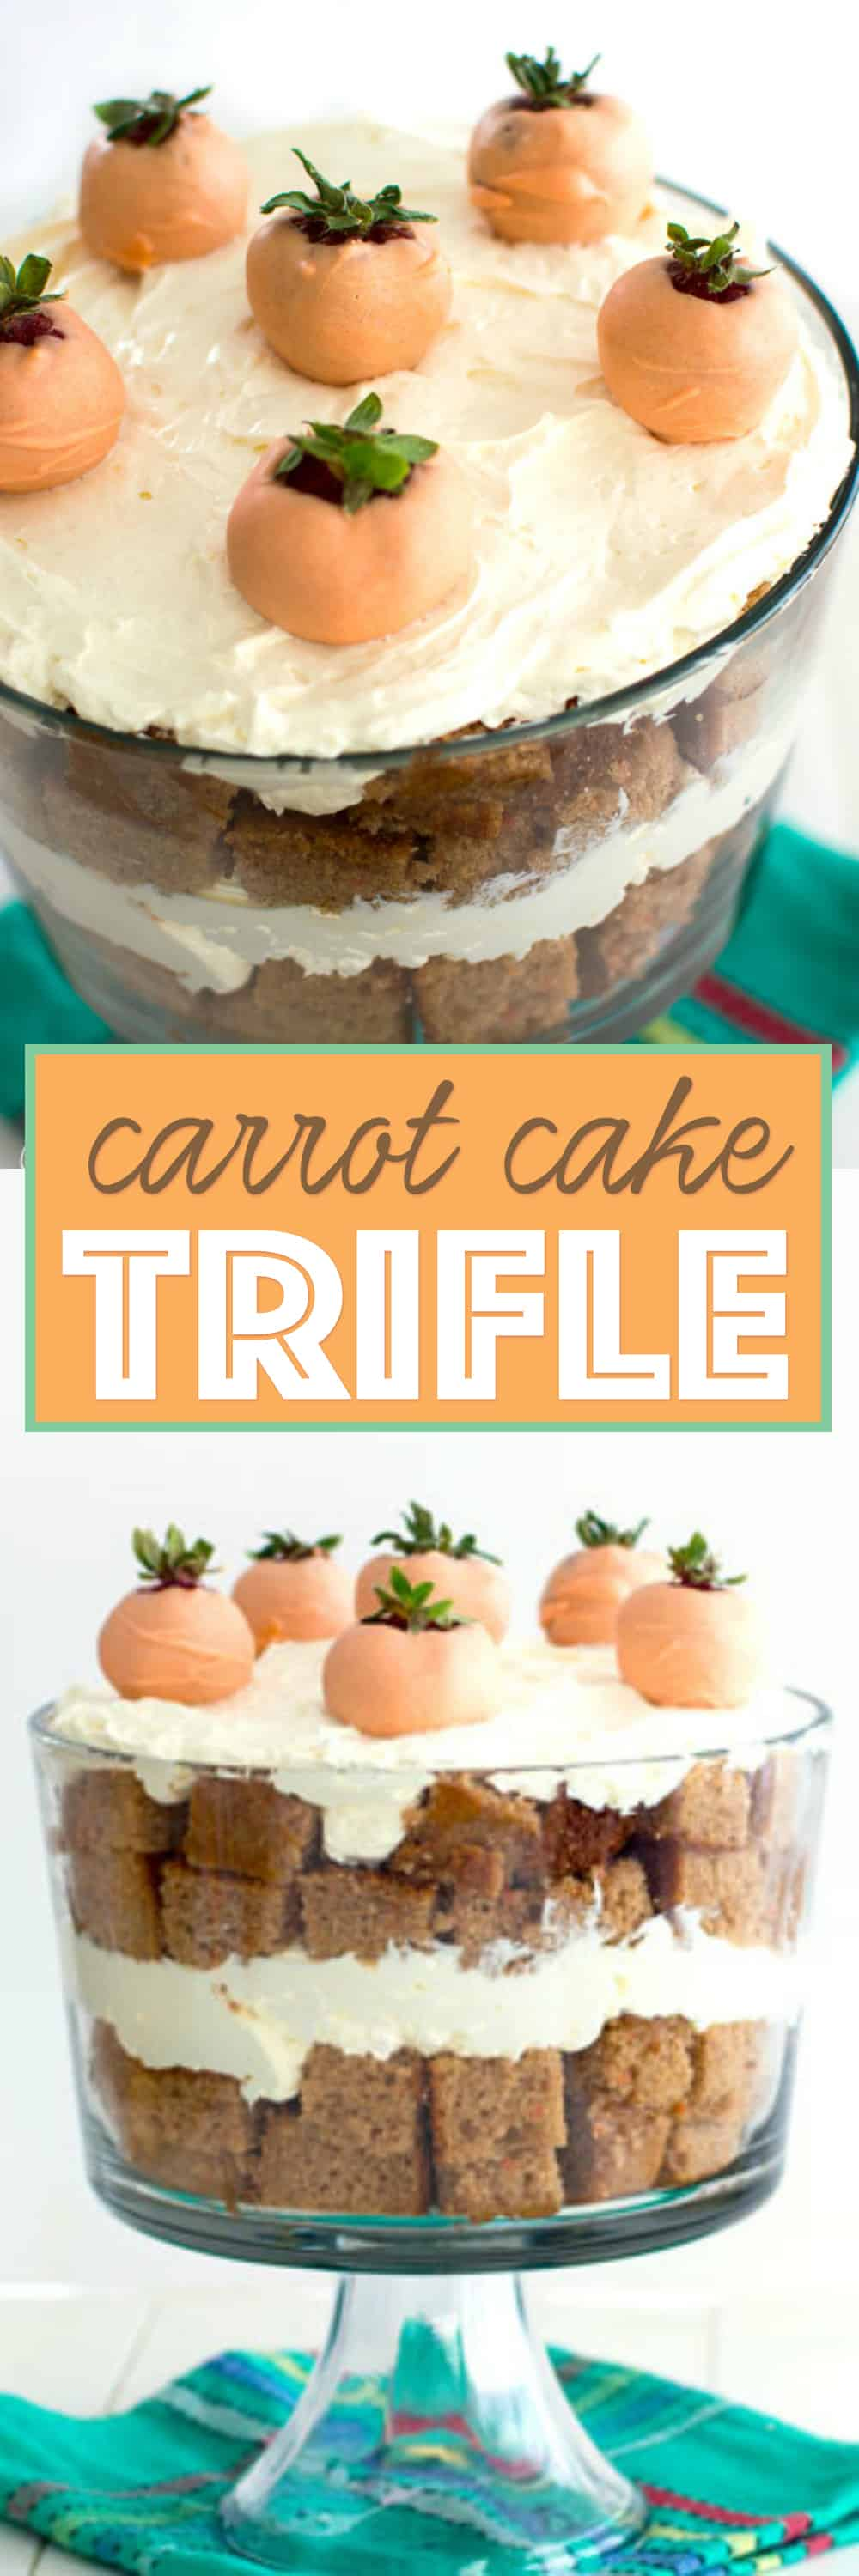 "This springtime carrot cake trifle features layers of moist carrot cake and no-bake cheesecake filling. Jazz it up with your favorite carrot cake additions such as walnuts or raisins. Topped with adorable decorations like chocolate covered strawberry ""carrots,"" this dessert is sure to be an Easter showstopper!"